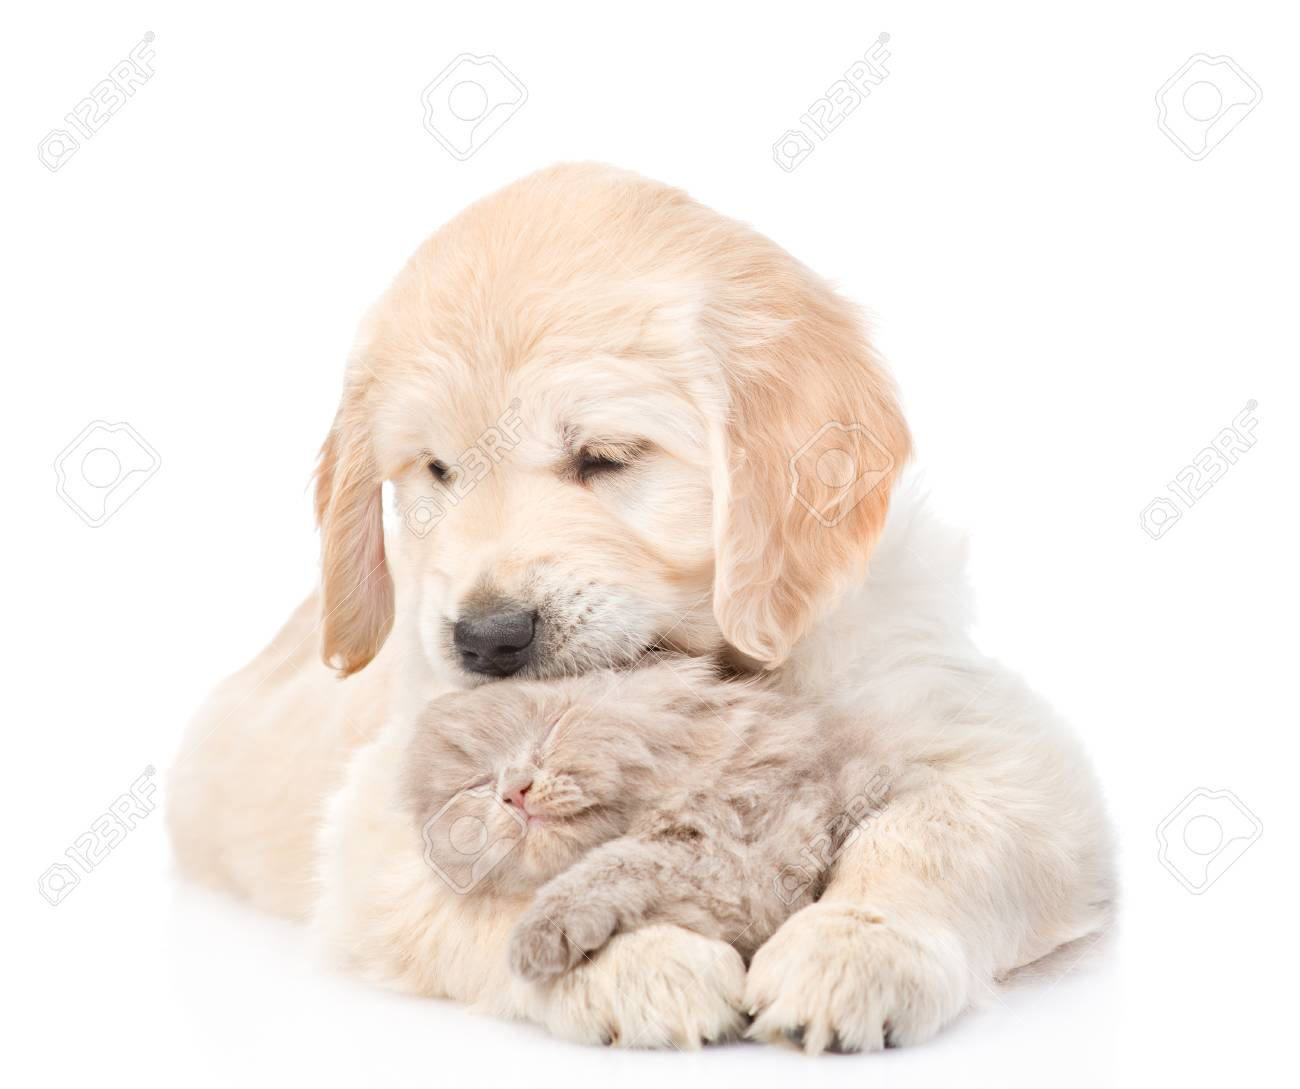 Golden Retriever Puppy Hugging A Small Kitten Isolated On White